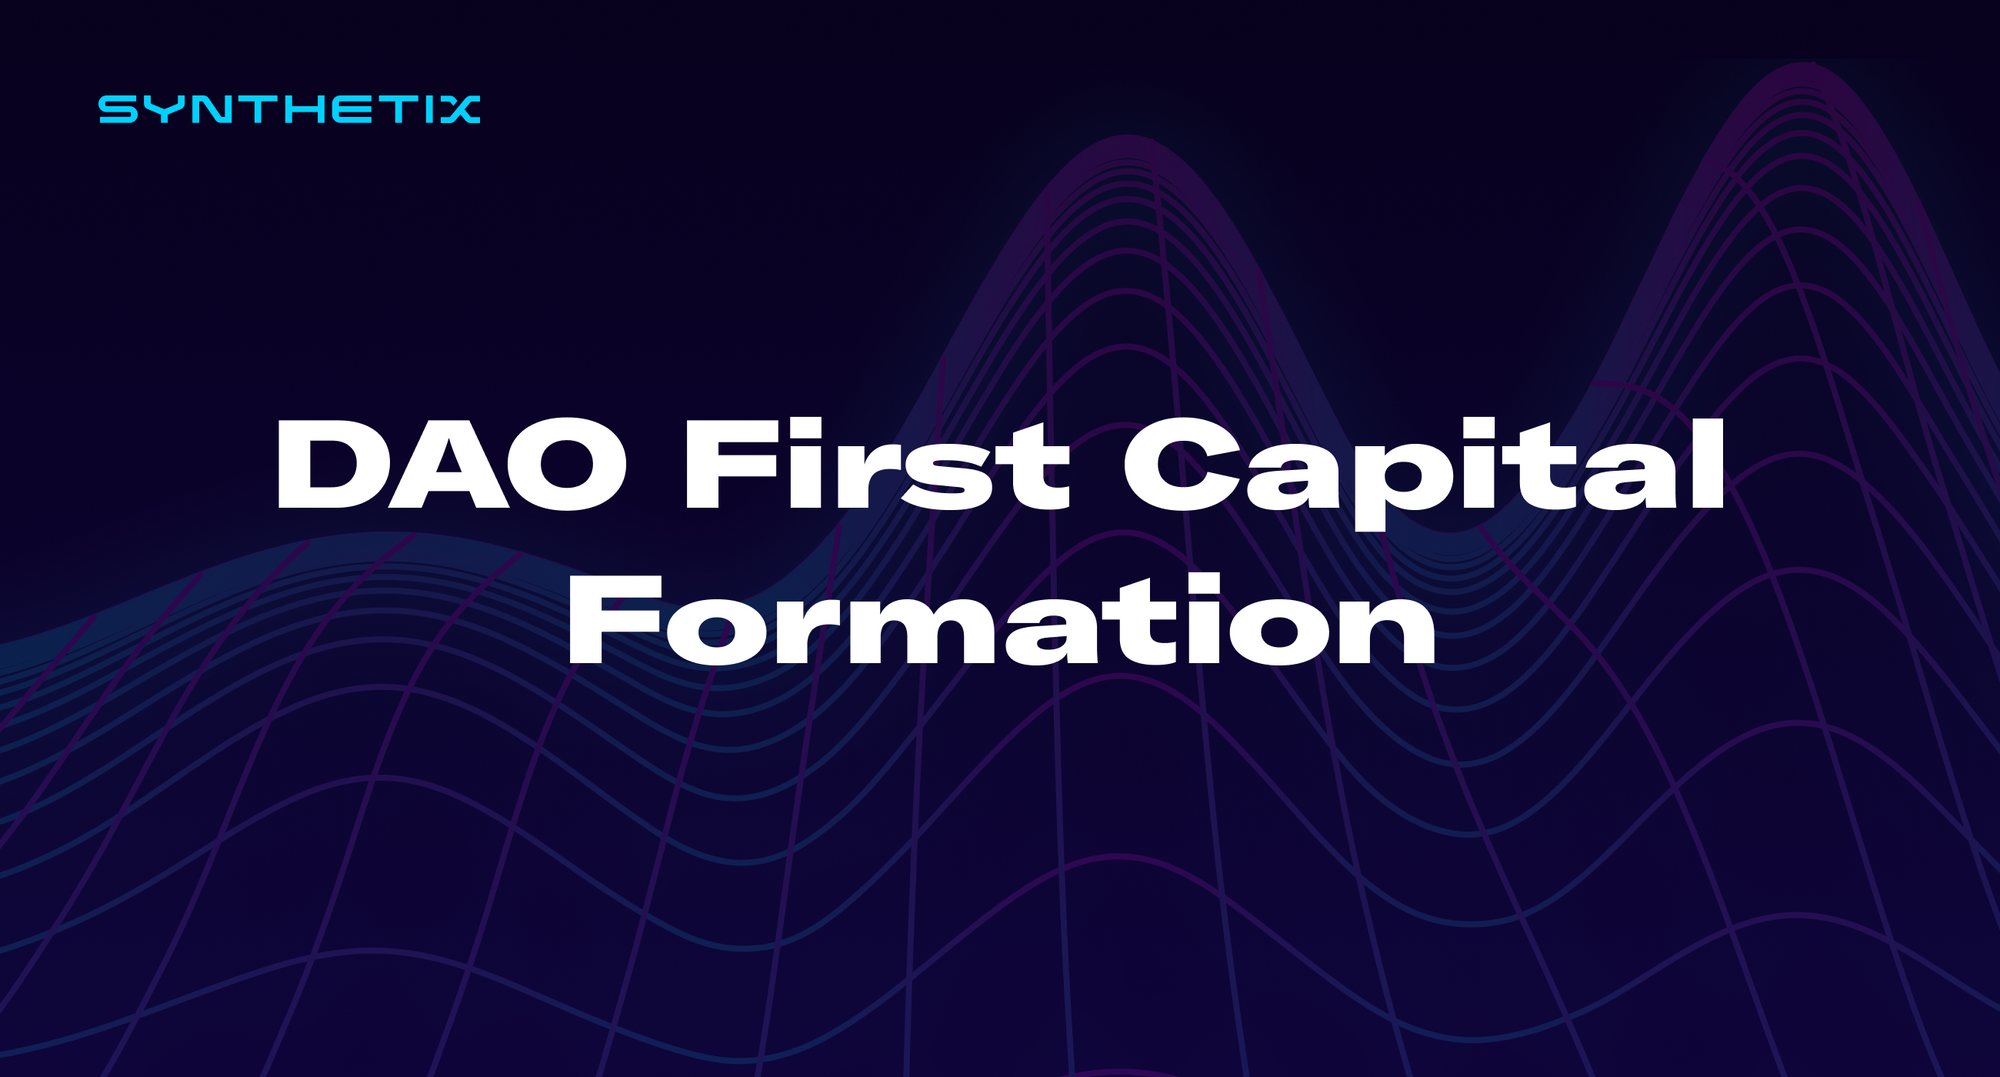 DAO First Capital Formation